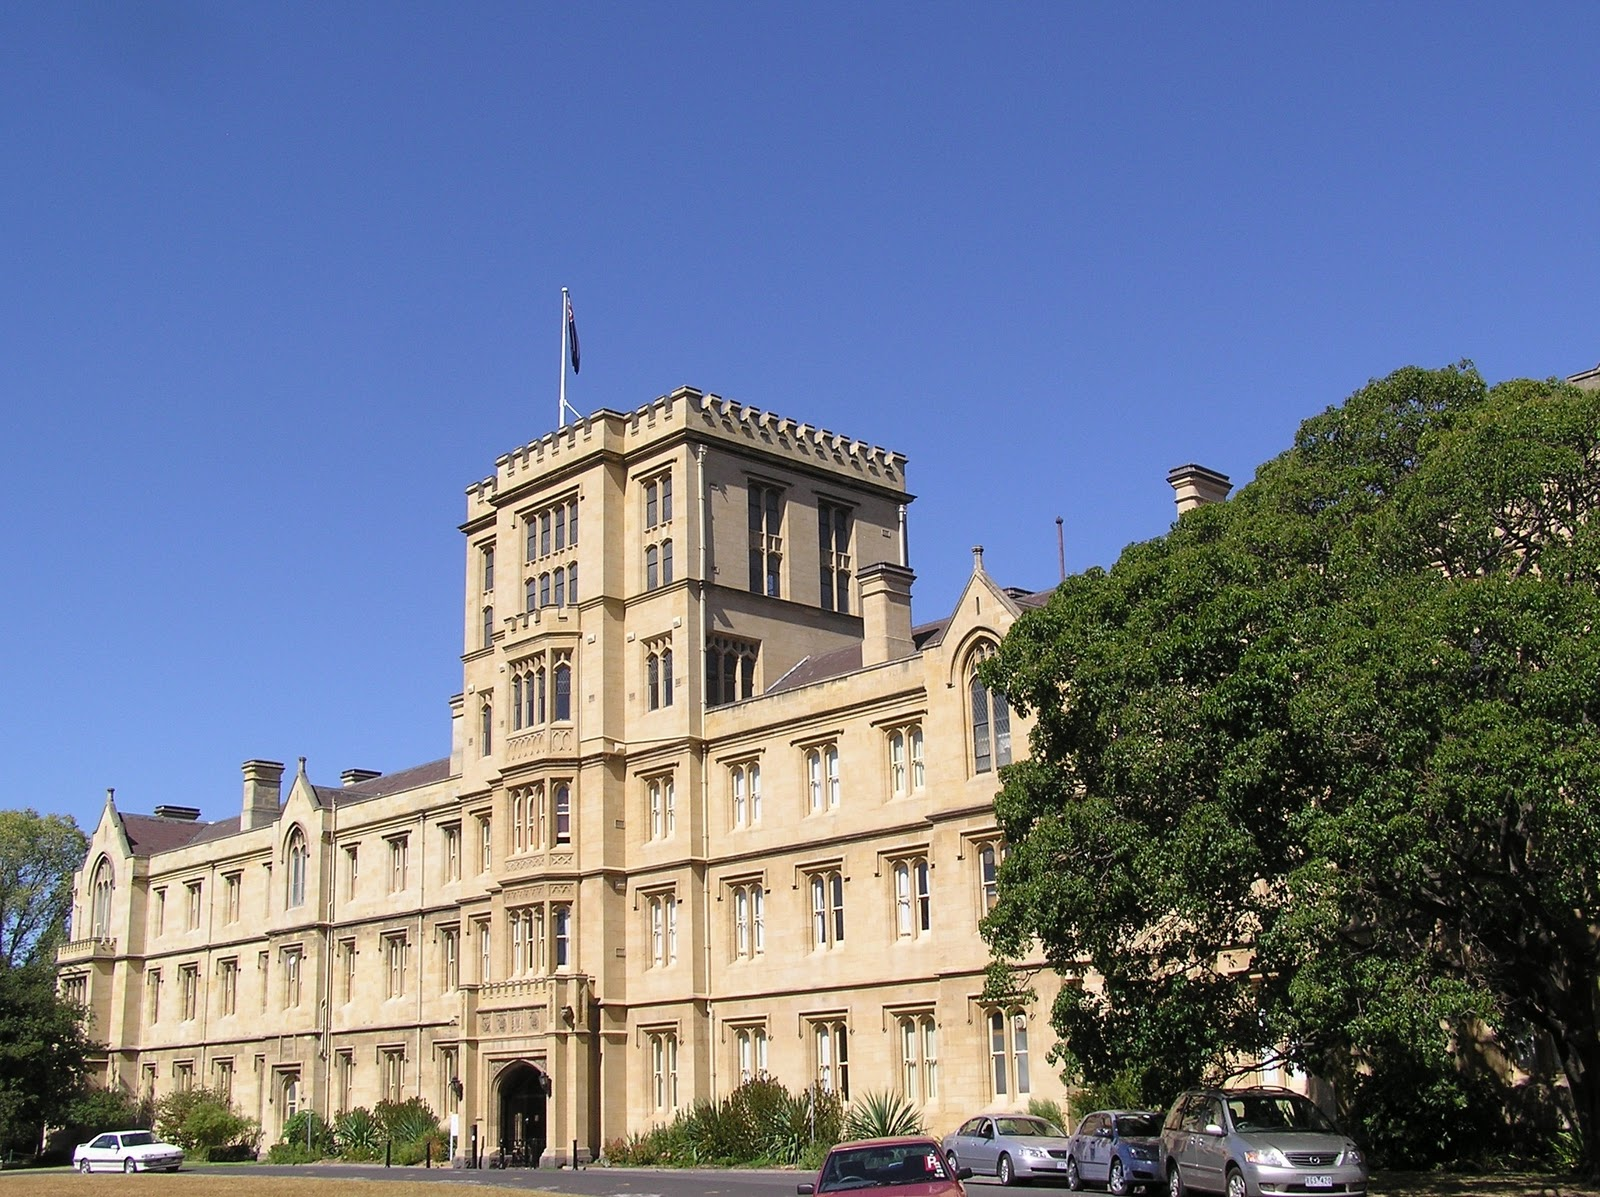 Congrats to melbourne university for being voted 1 university